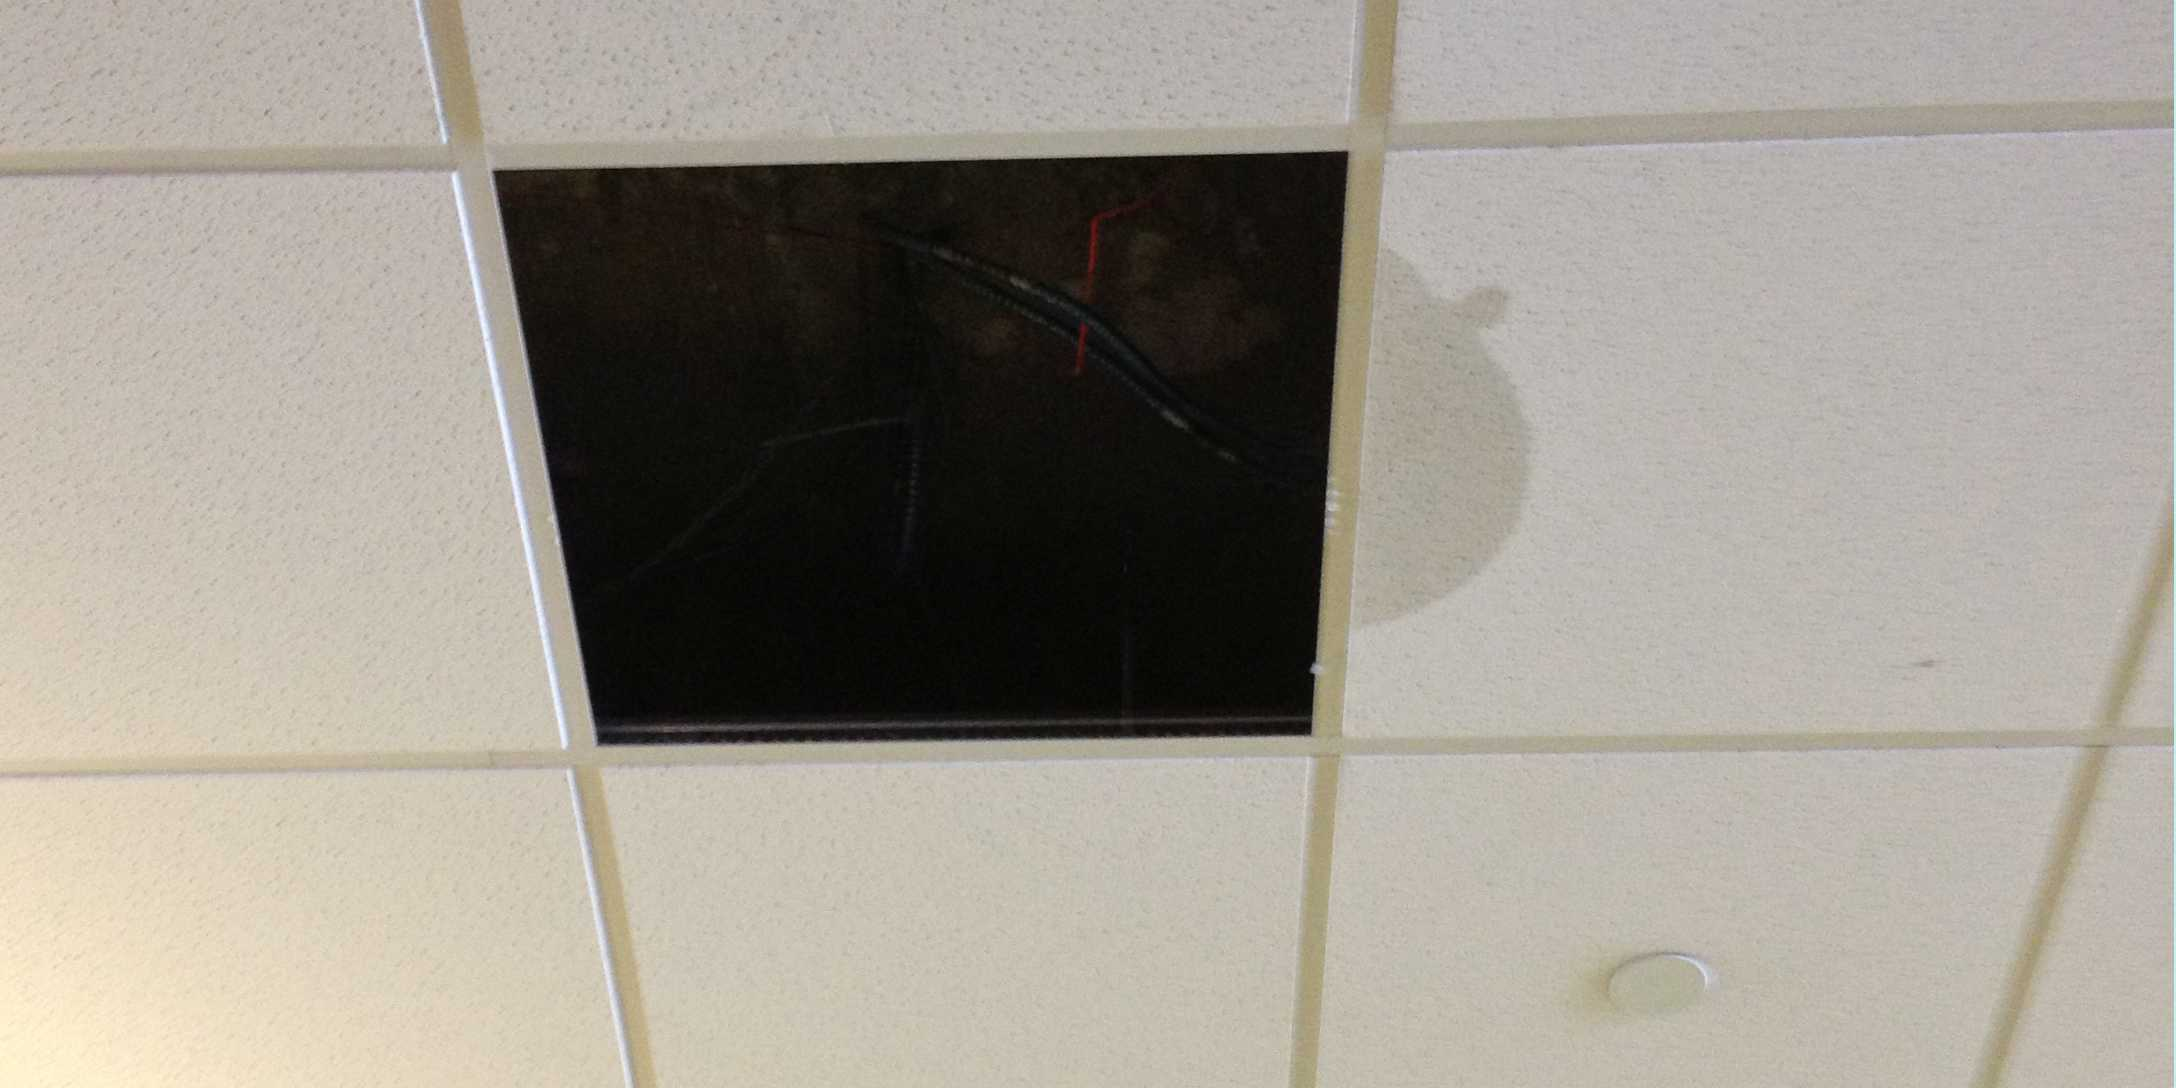 Ceiling tiles in the Carl Hansen Student Center are leaking and dropping due to the excess of snow on the roof.